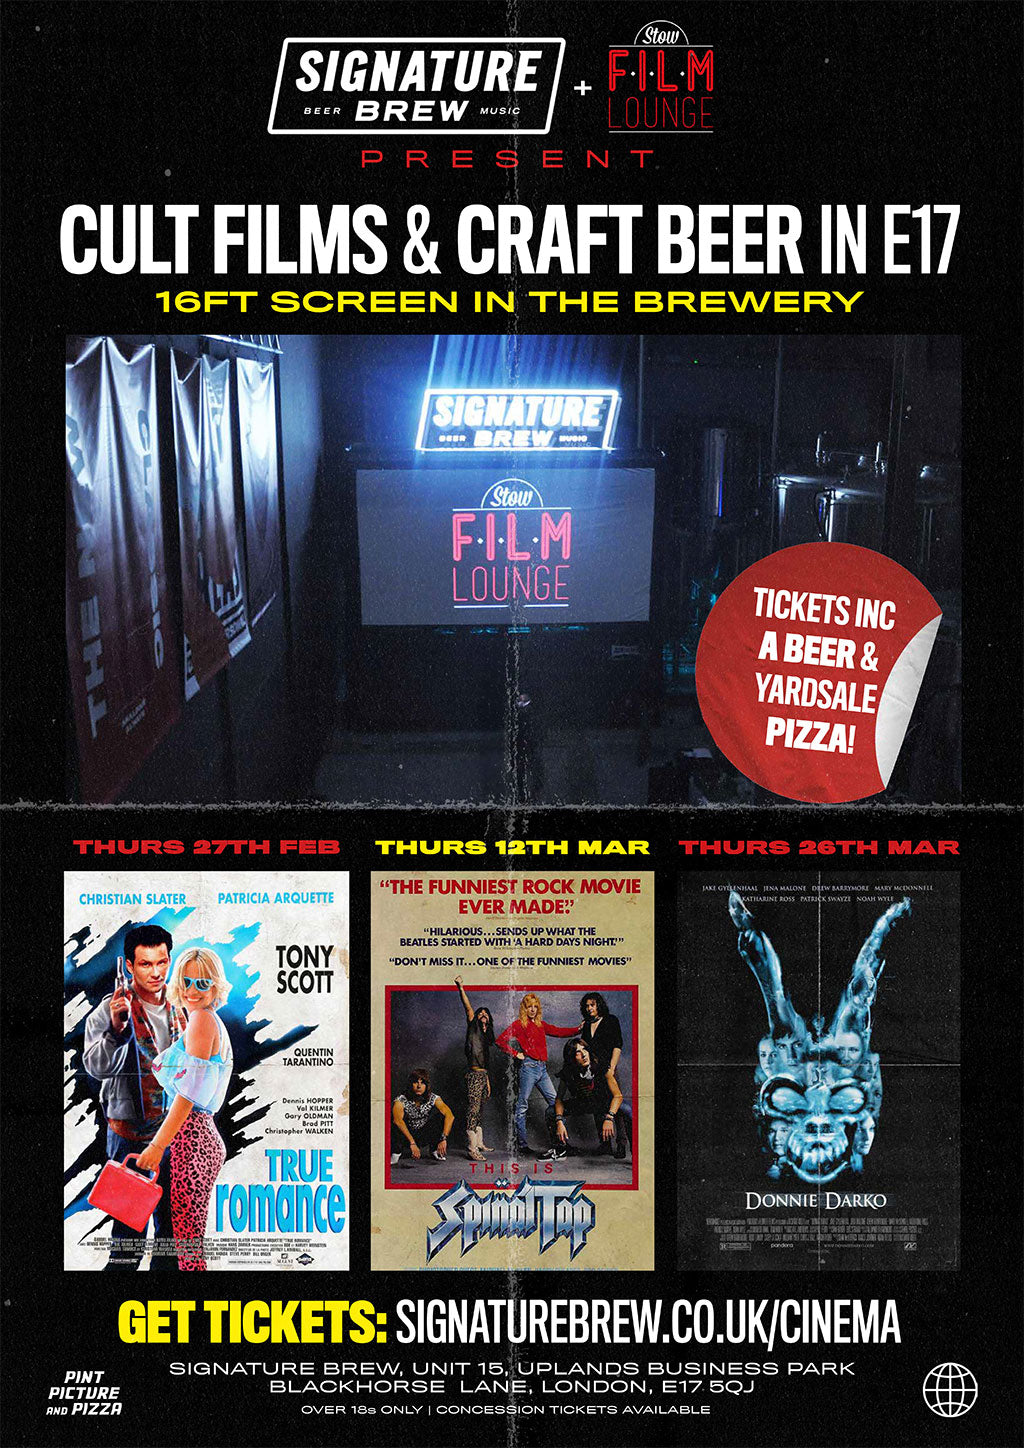 signature brew stow film lounge films movies walthamstow e17 cinema tickets